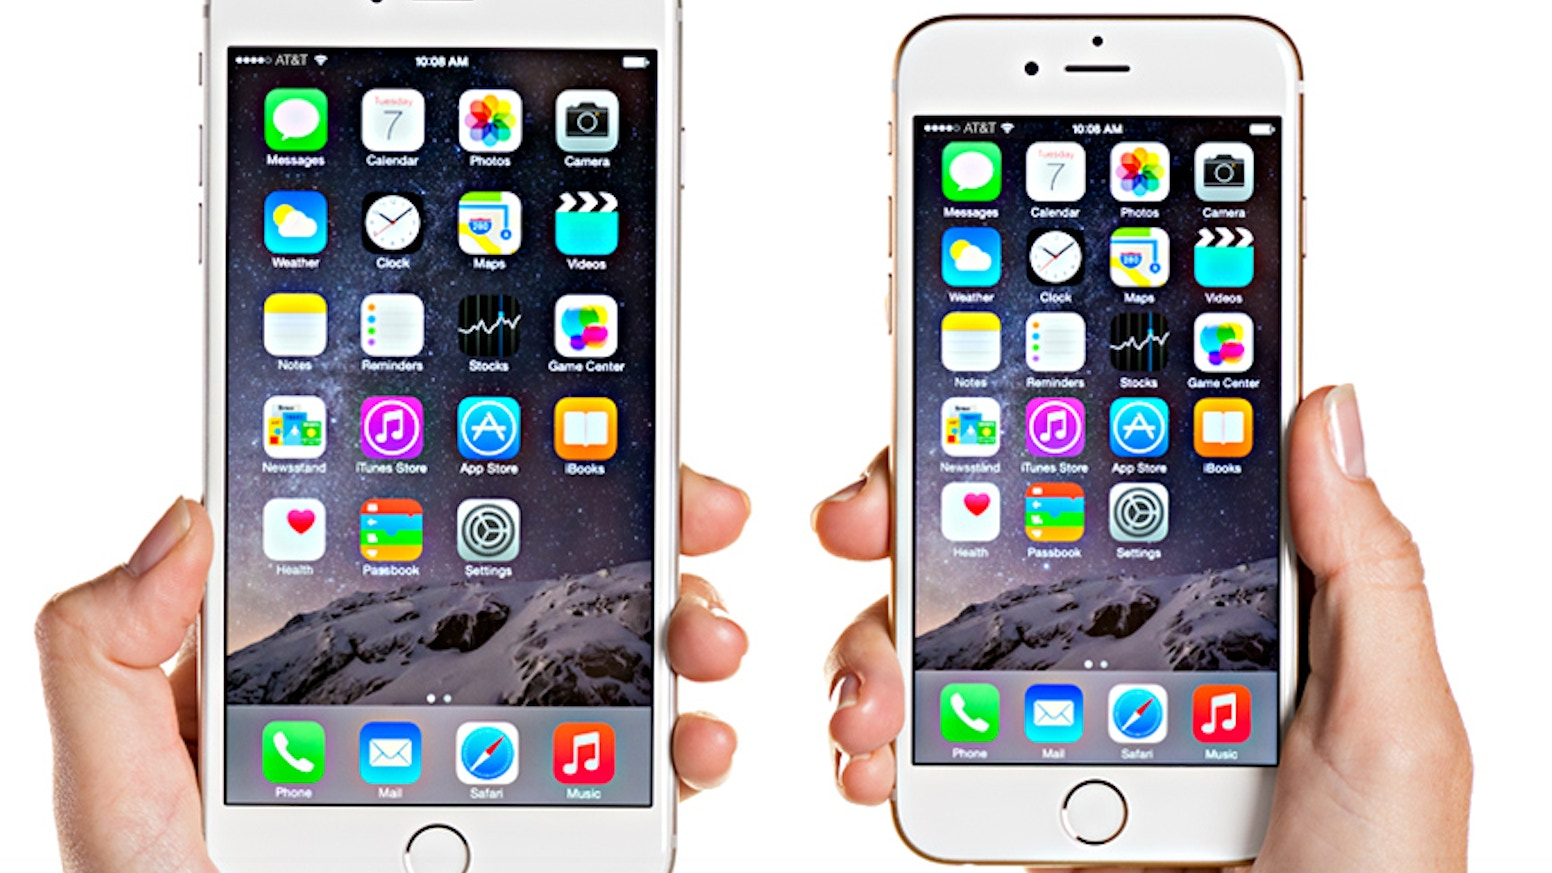 The world's most intelligent tempered glass screen protector for iPhone 6 and iPhone 6 Plus.  New iPhone 6S available in Oct 2015.